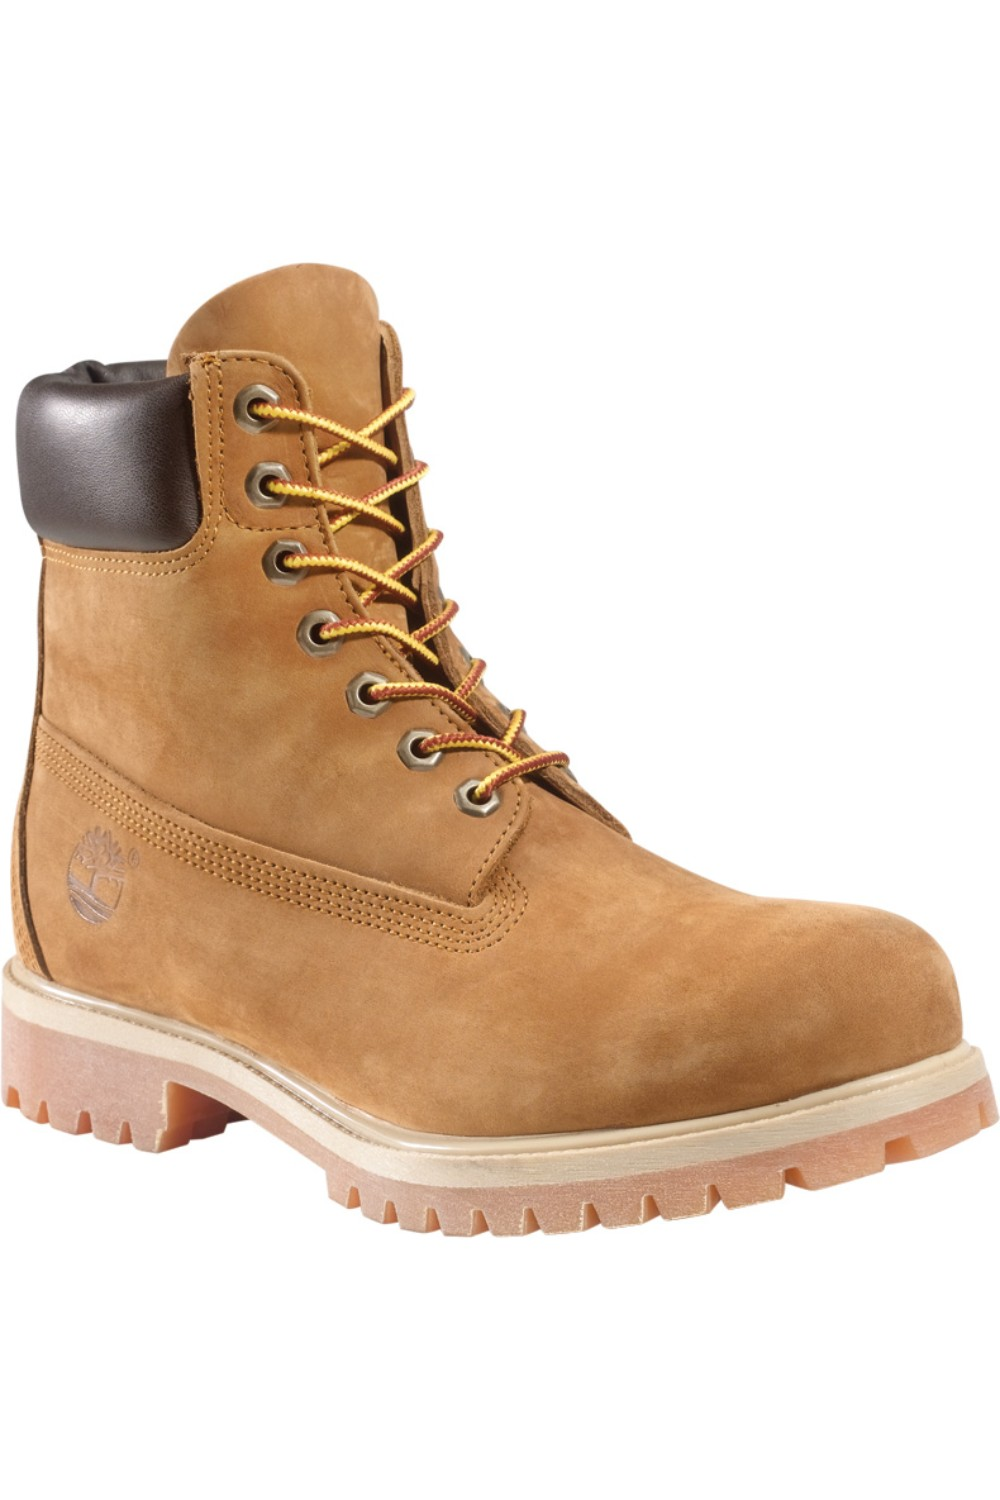 e507de28a Sale. TIMBERLAND 6 INCH PREMIUM BOOT RUST NUBUCK. Touch to zoom